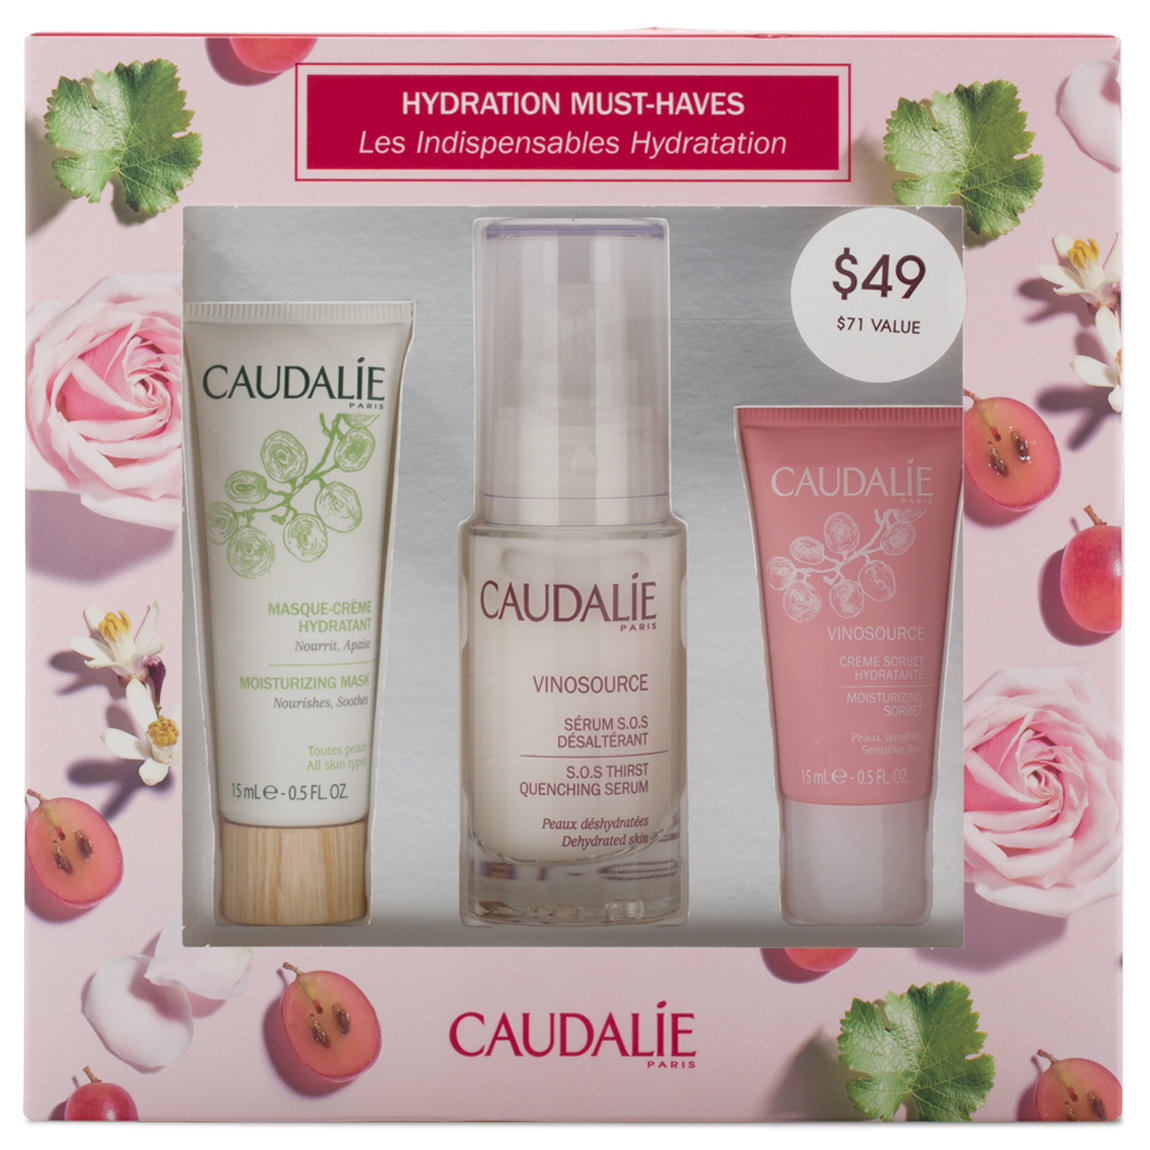 Caudalie Vinosource Hydration Must-Haves Set product smear.